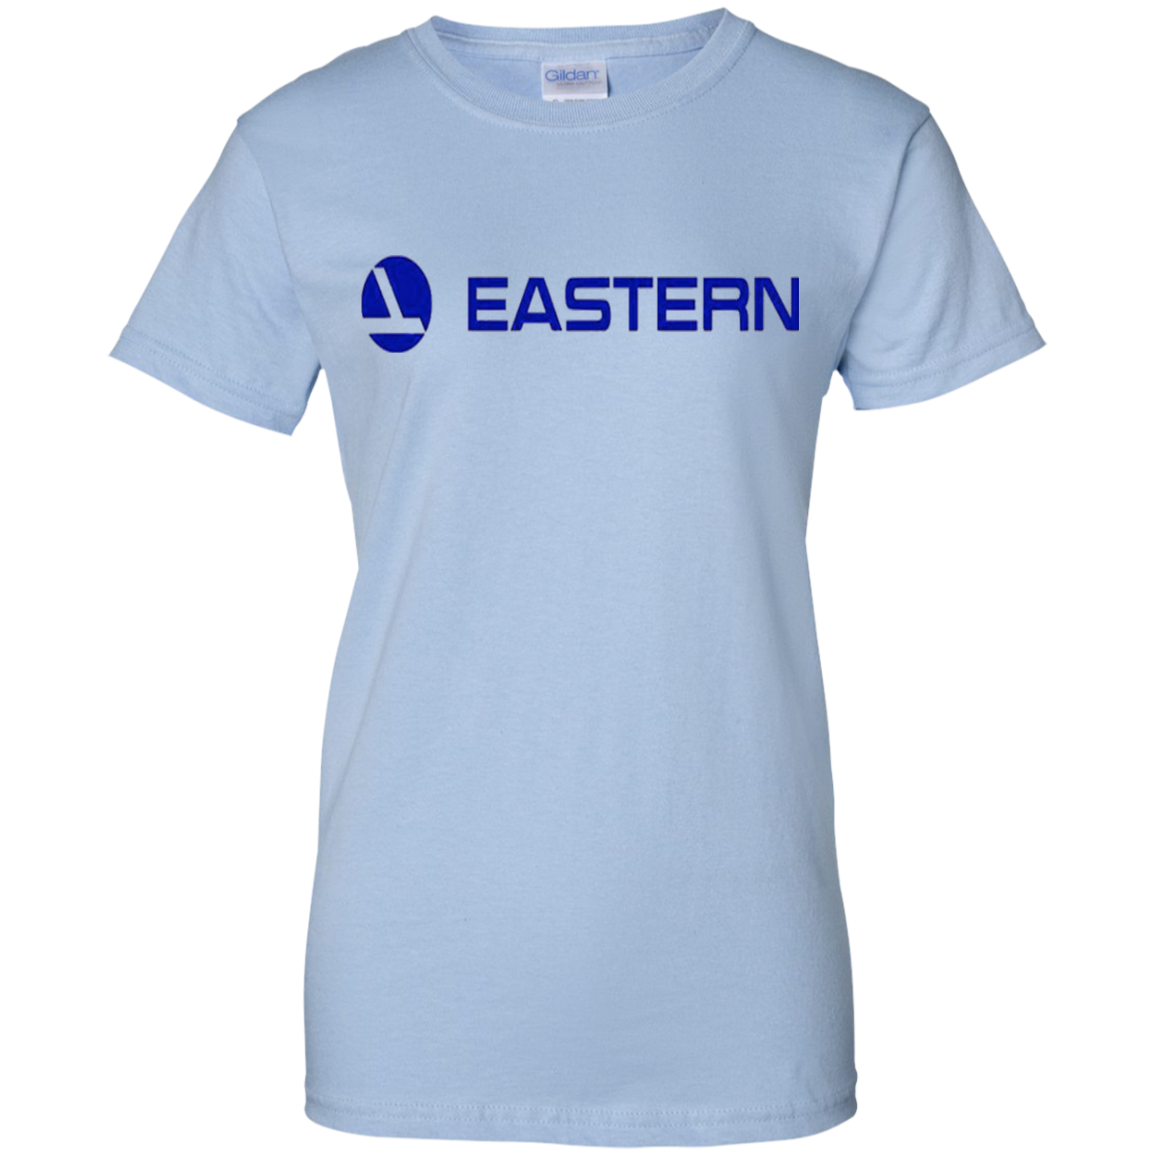 Eastern Airlines Vintage Logo on a Tee Shirt